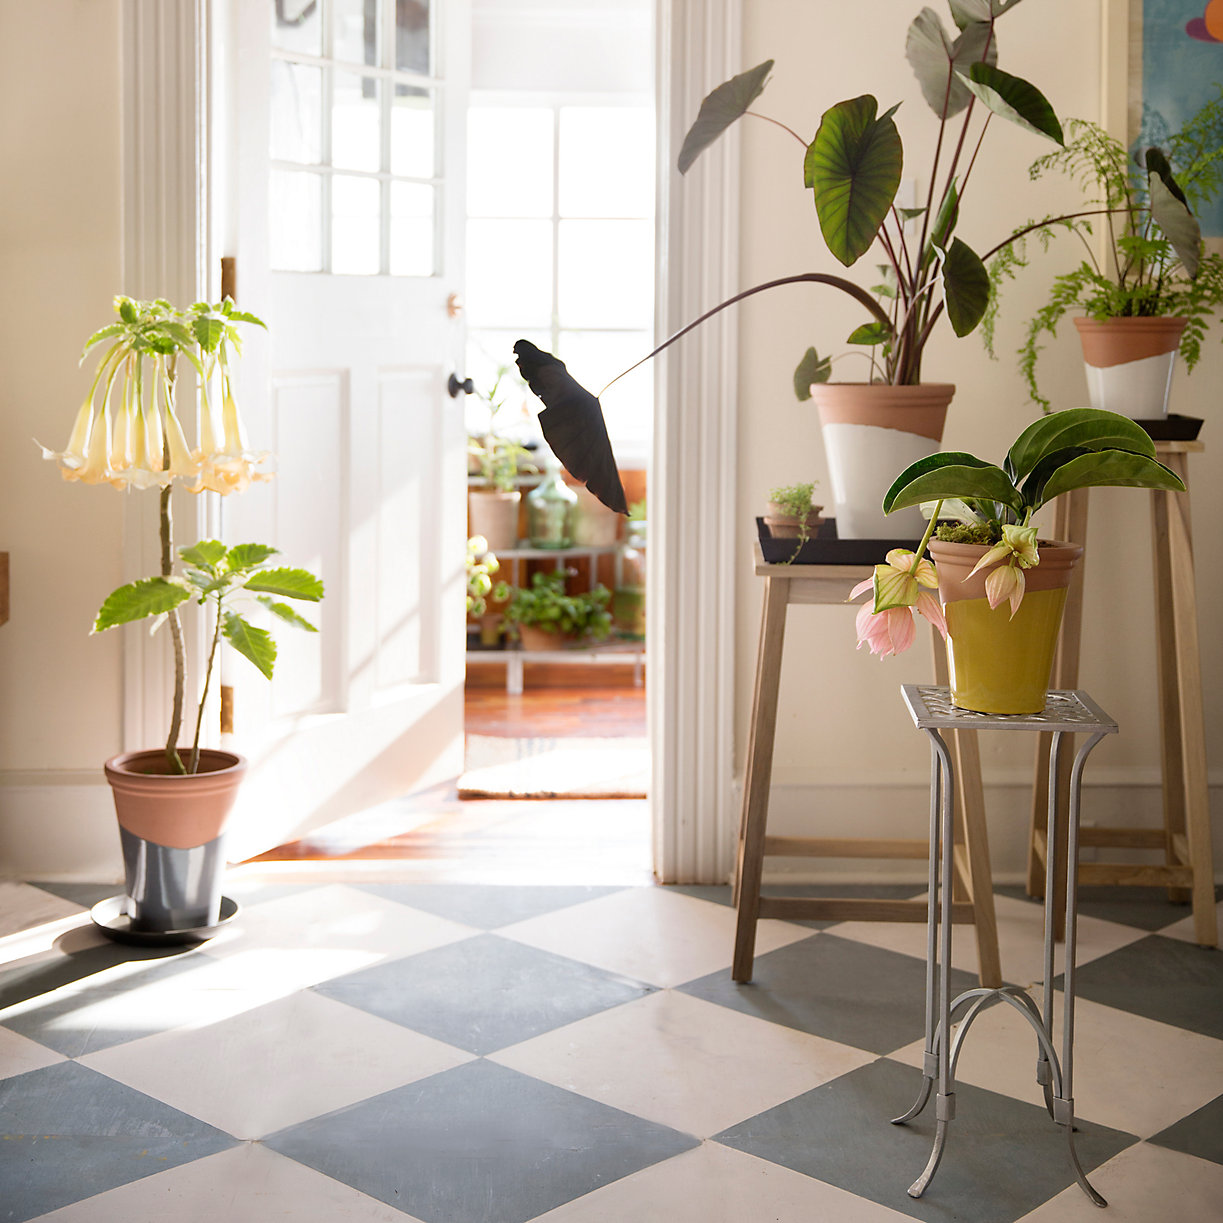 Potted plants on a checkered floor